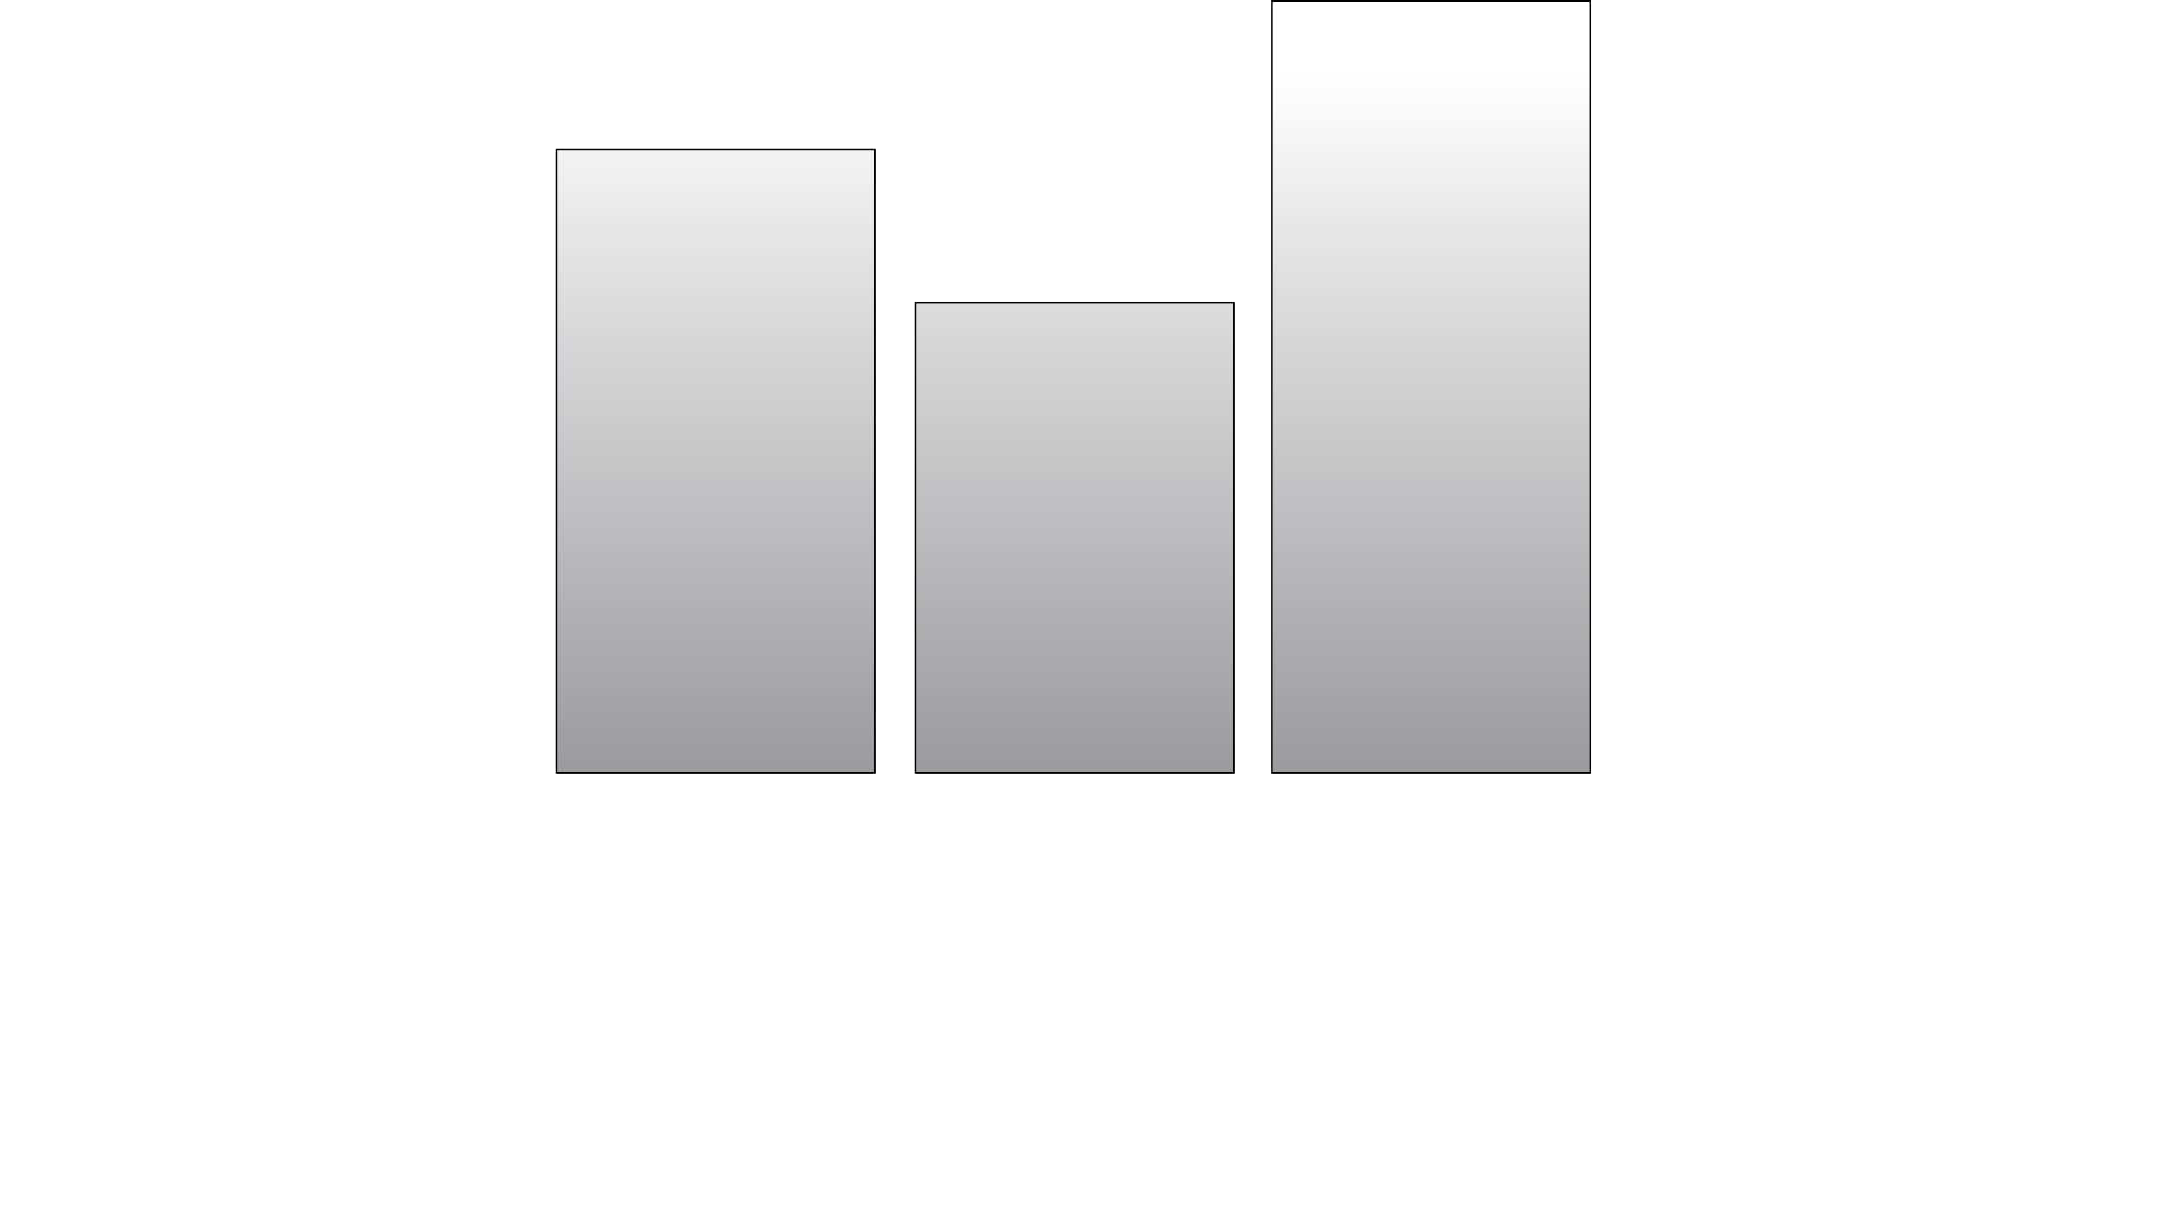 Forthright Properties